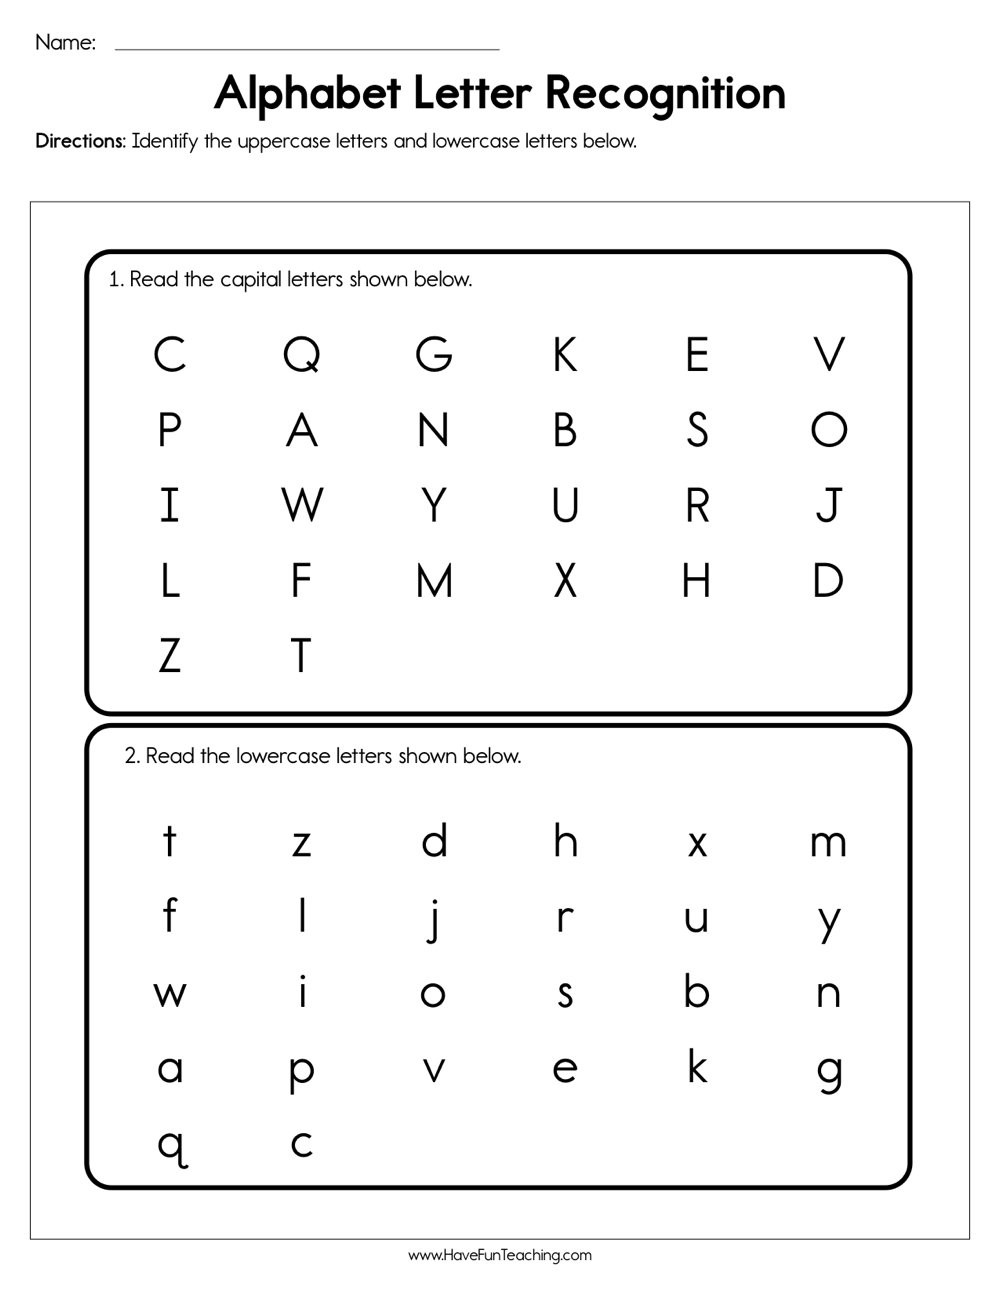 Preschool Letter Recognition Worksheets Alphabet Letter Recognition assessment Have Fun Teaching